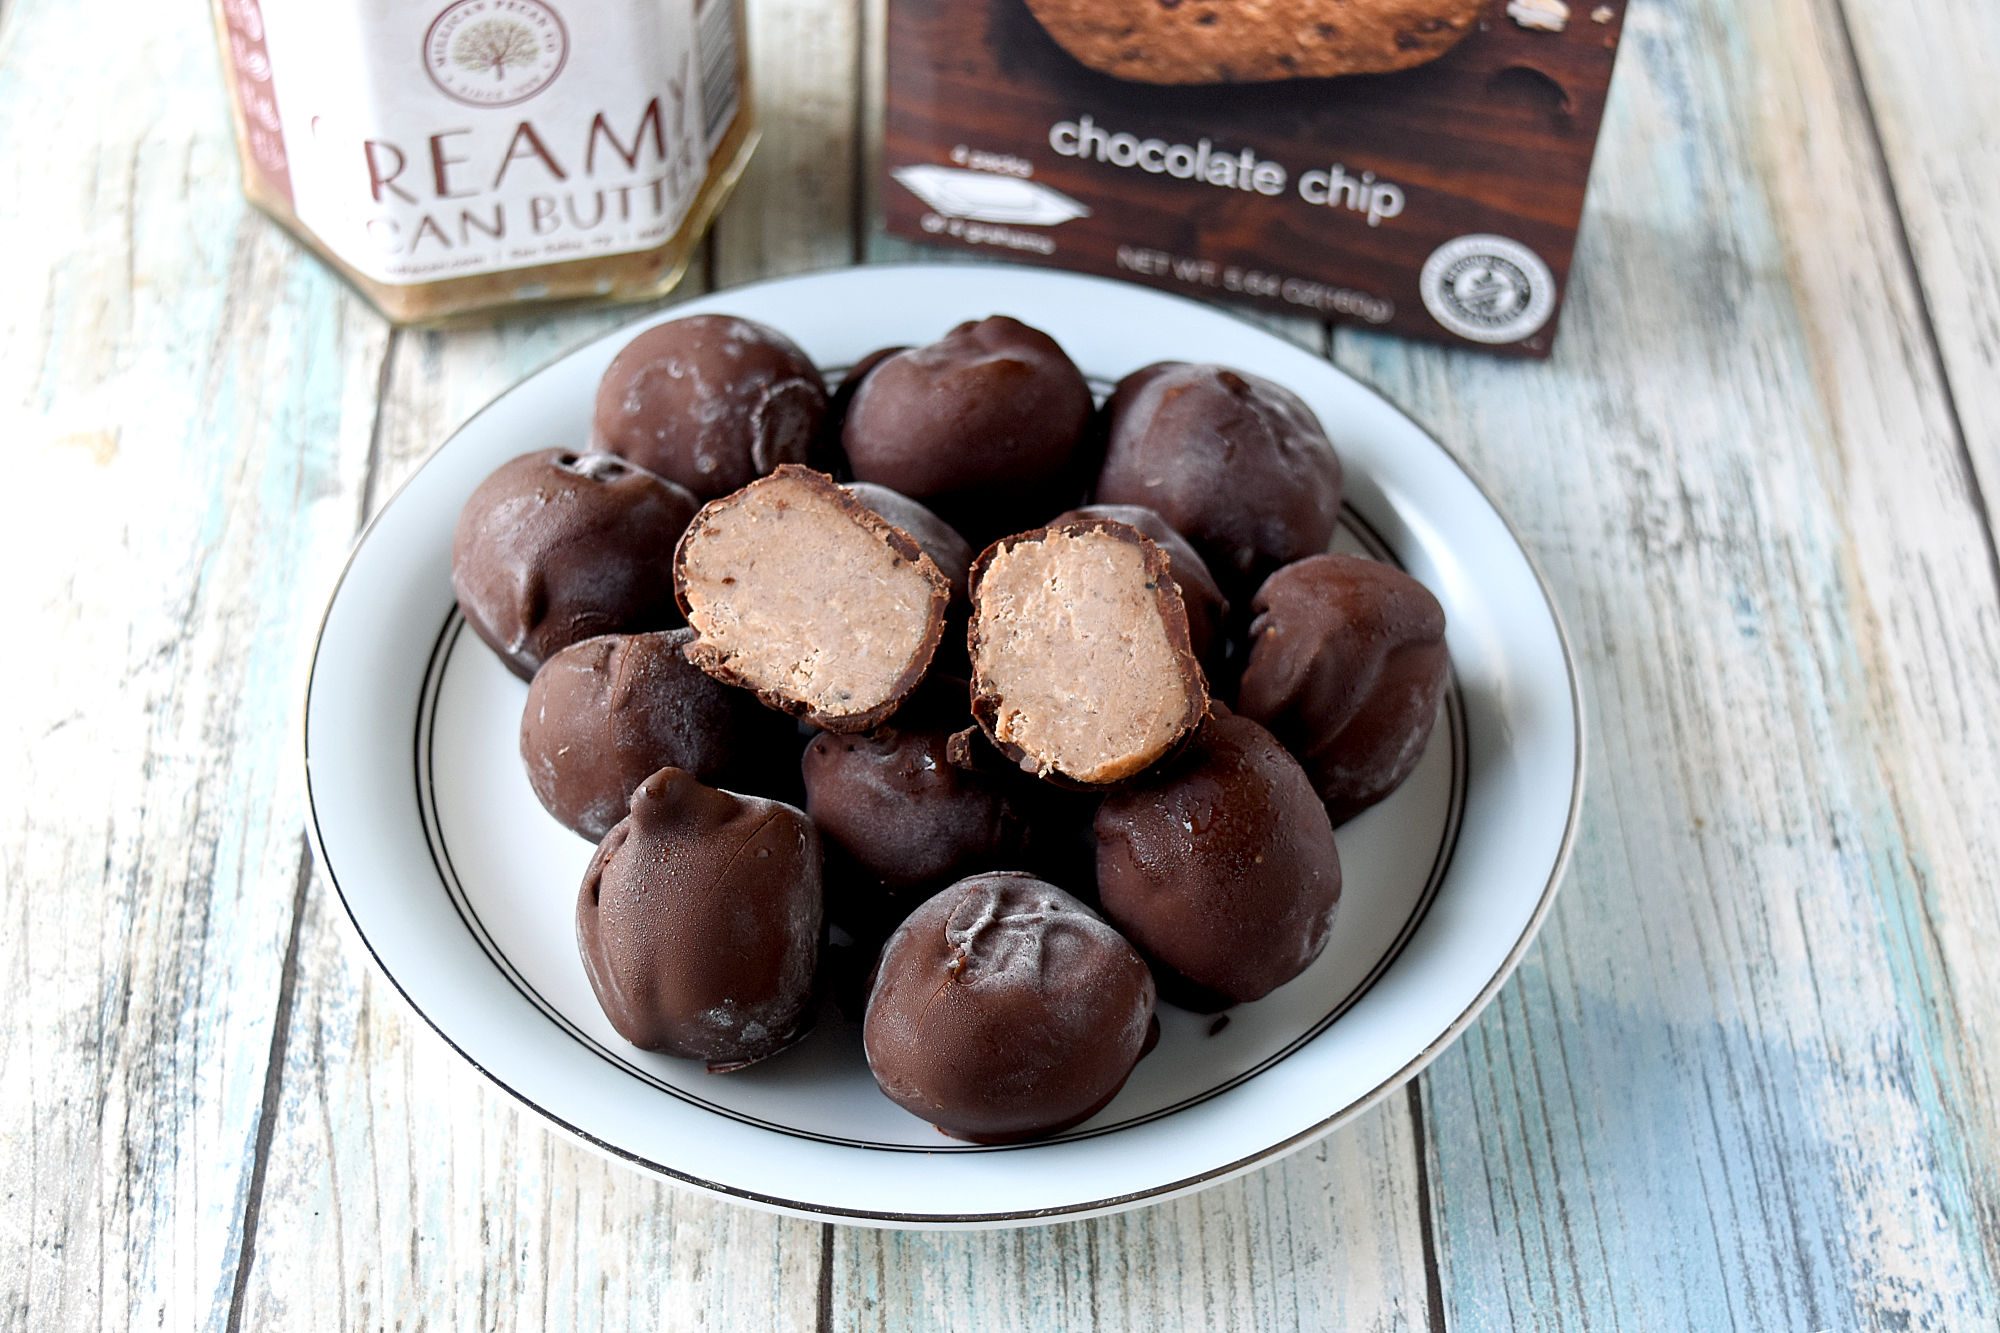 Chocolate Chip Pecan Truffles are healthy cookie truffles! Made with Nairn's chocolate chip grams and Millican Pecan's scrumptious pecan butter, these truffles are guilt free and wholesome. #FallFlavors